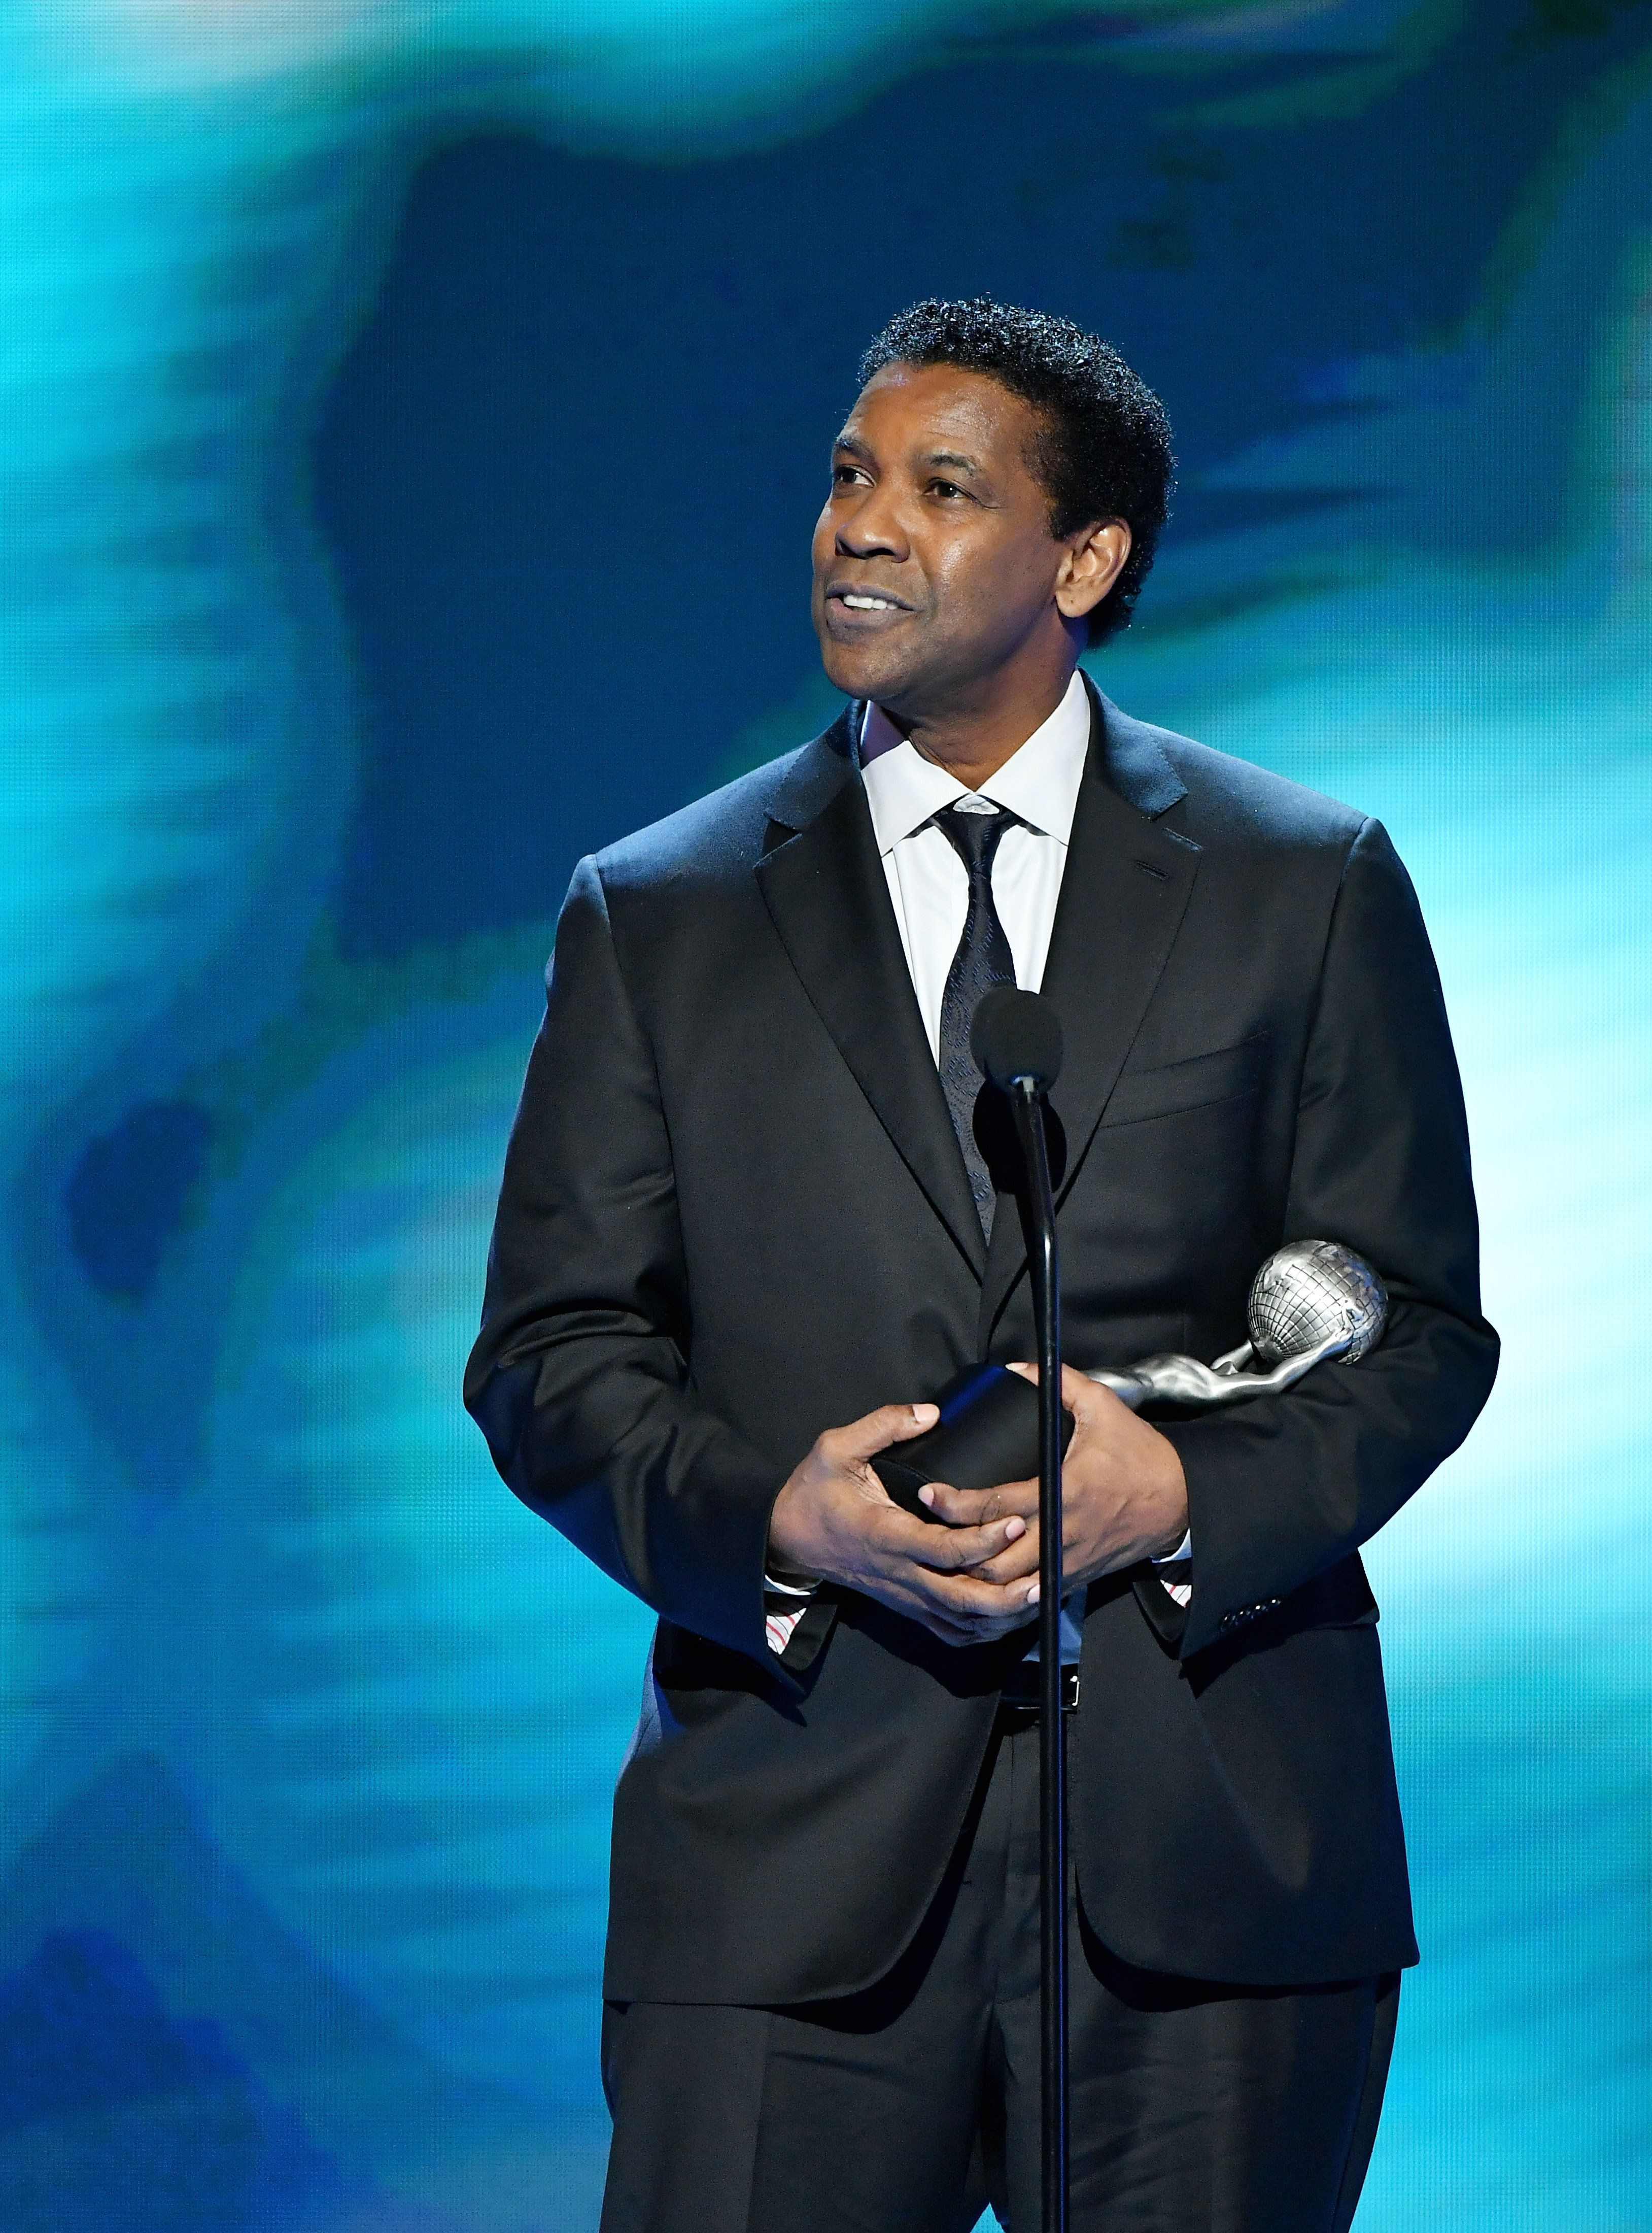 PASADENA, CA - FEBRUARY 11:  Actor Denzel Washington accepts award for Outstanding Actor in a Motion Picture onstage at the 48th NAACP Image Awards at Pasadena Civic Auditorium on February 11, 2017 in Pasadena, California.  (Photo by Earl Gibson III/WireImage)